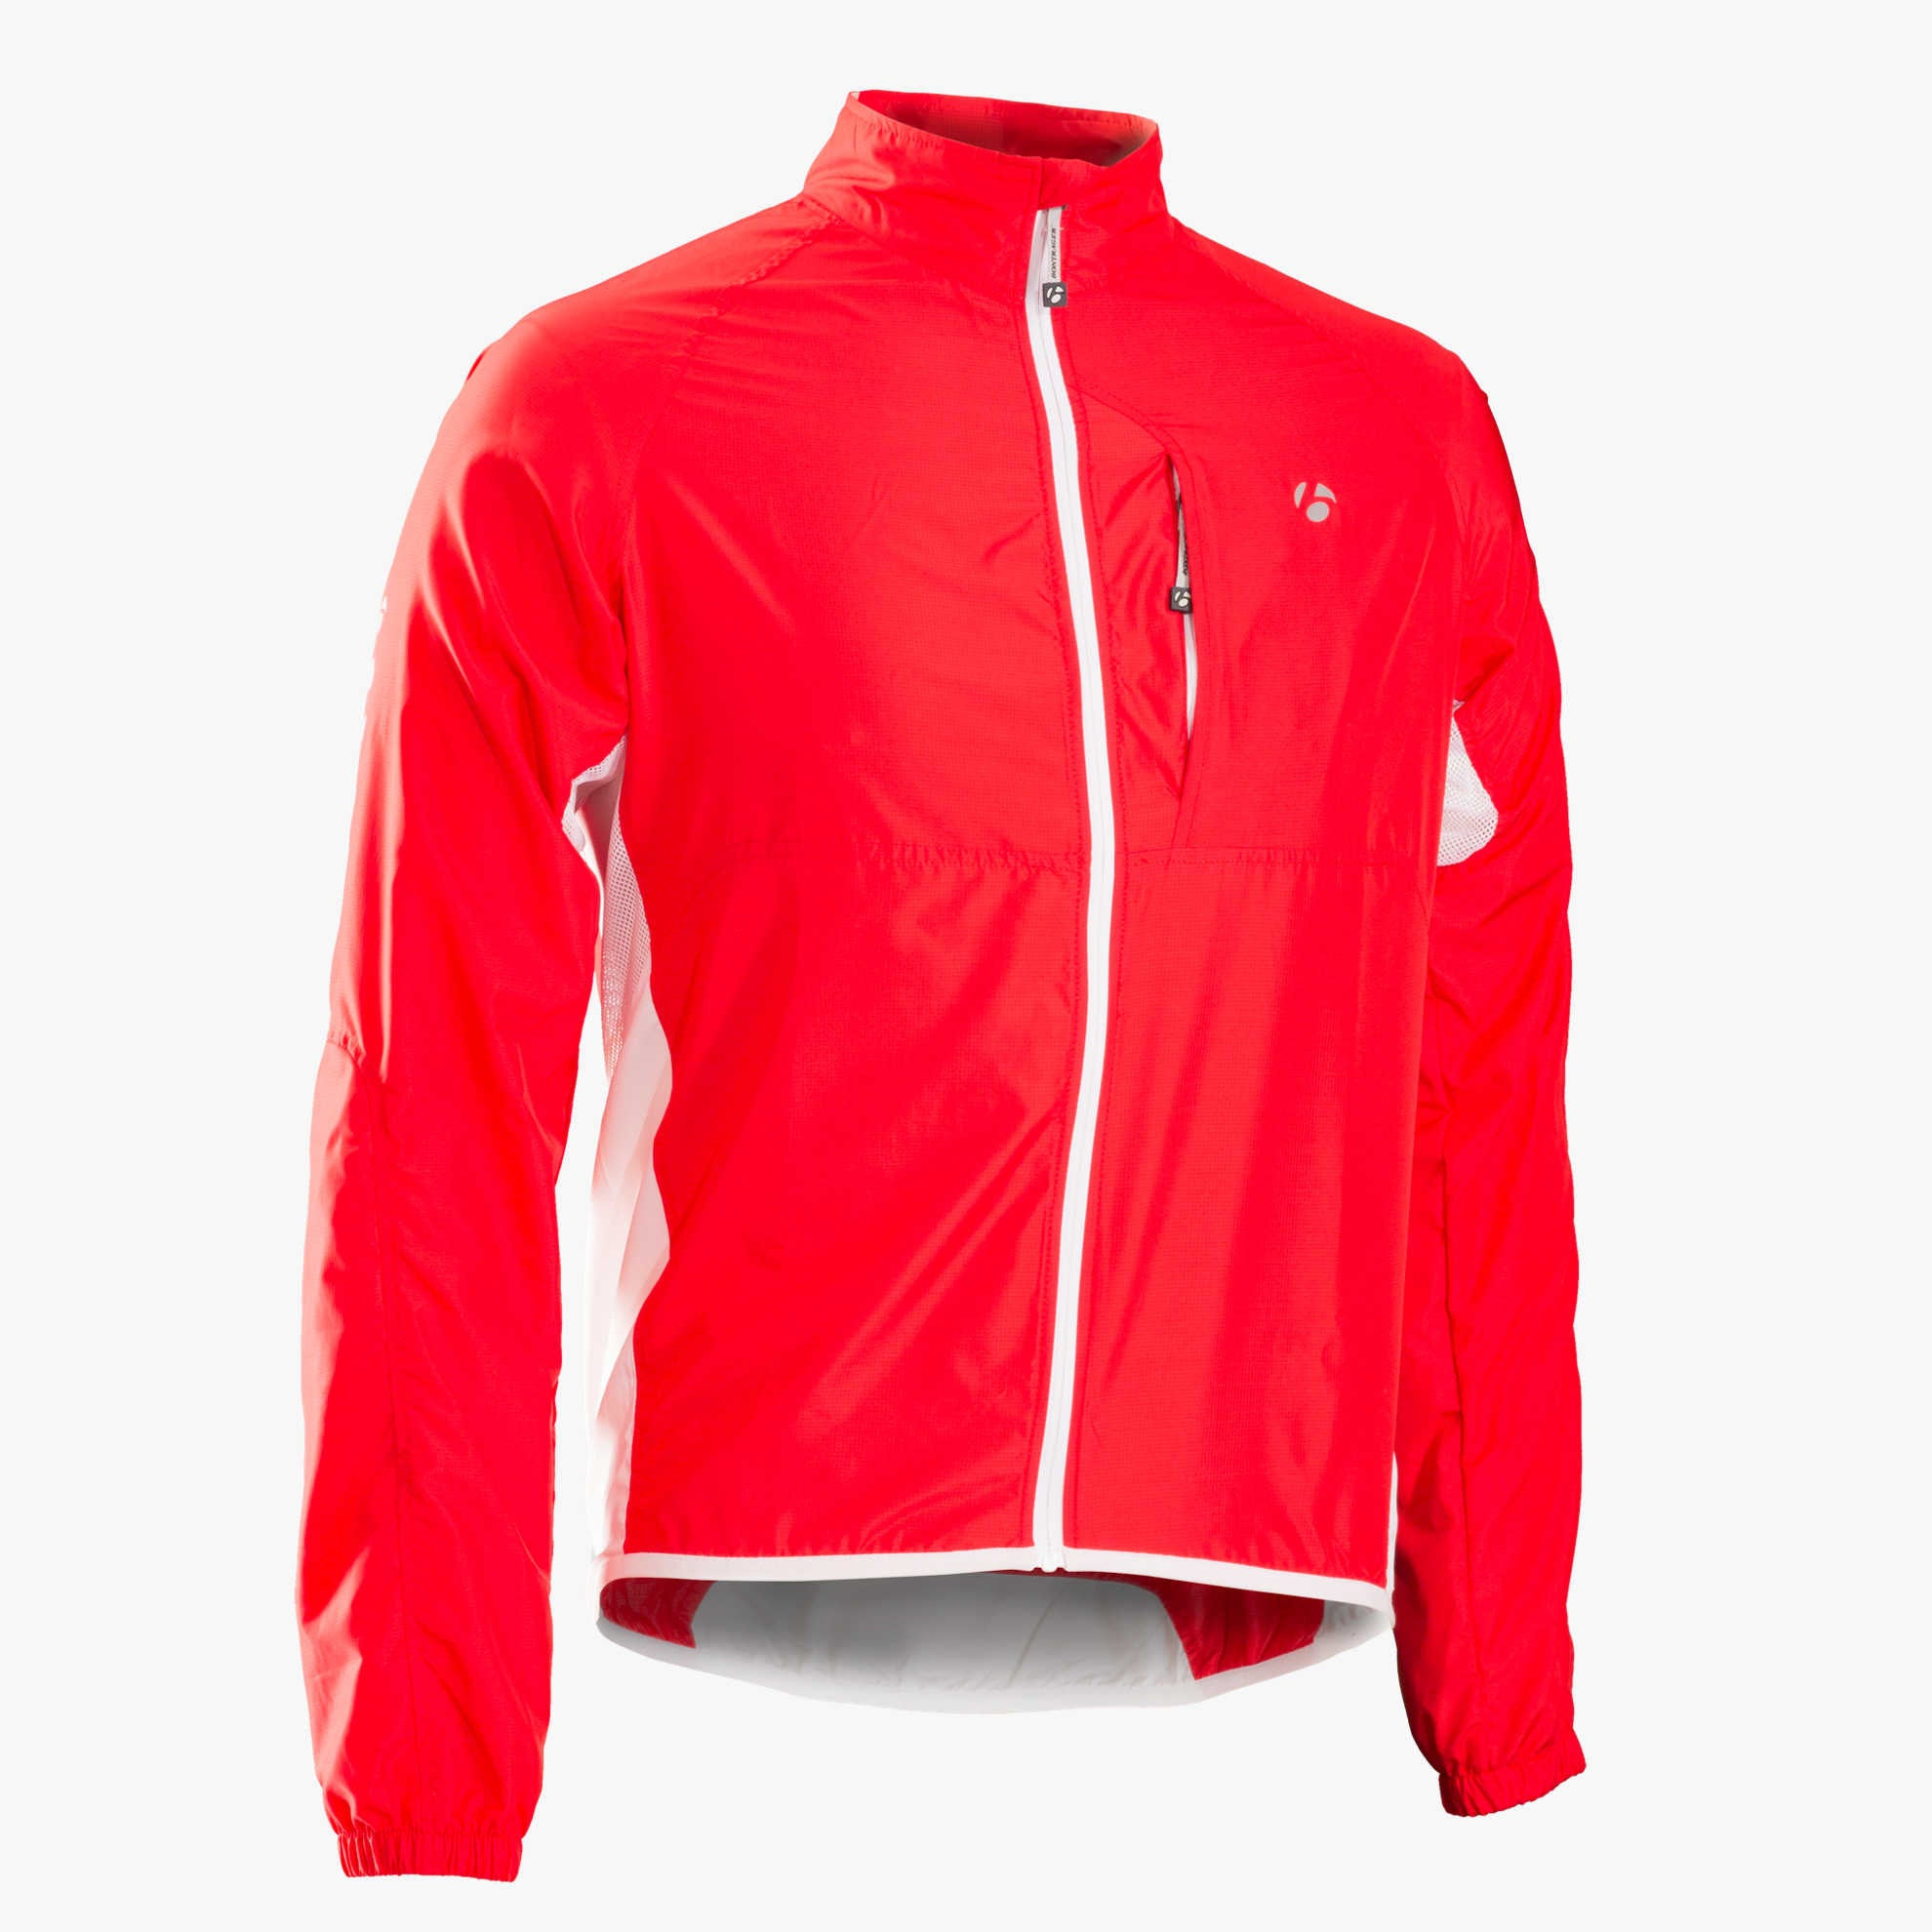 BONTRAGER_RACE_WINDSHELL_RED_1.jpg?v=1519999822